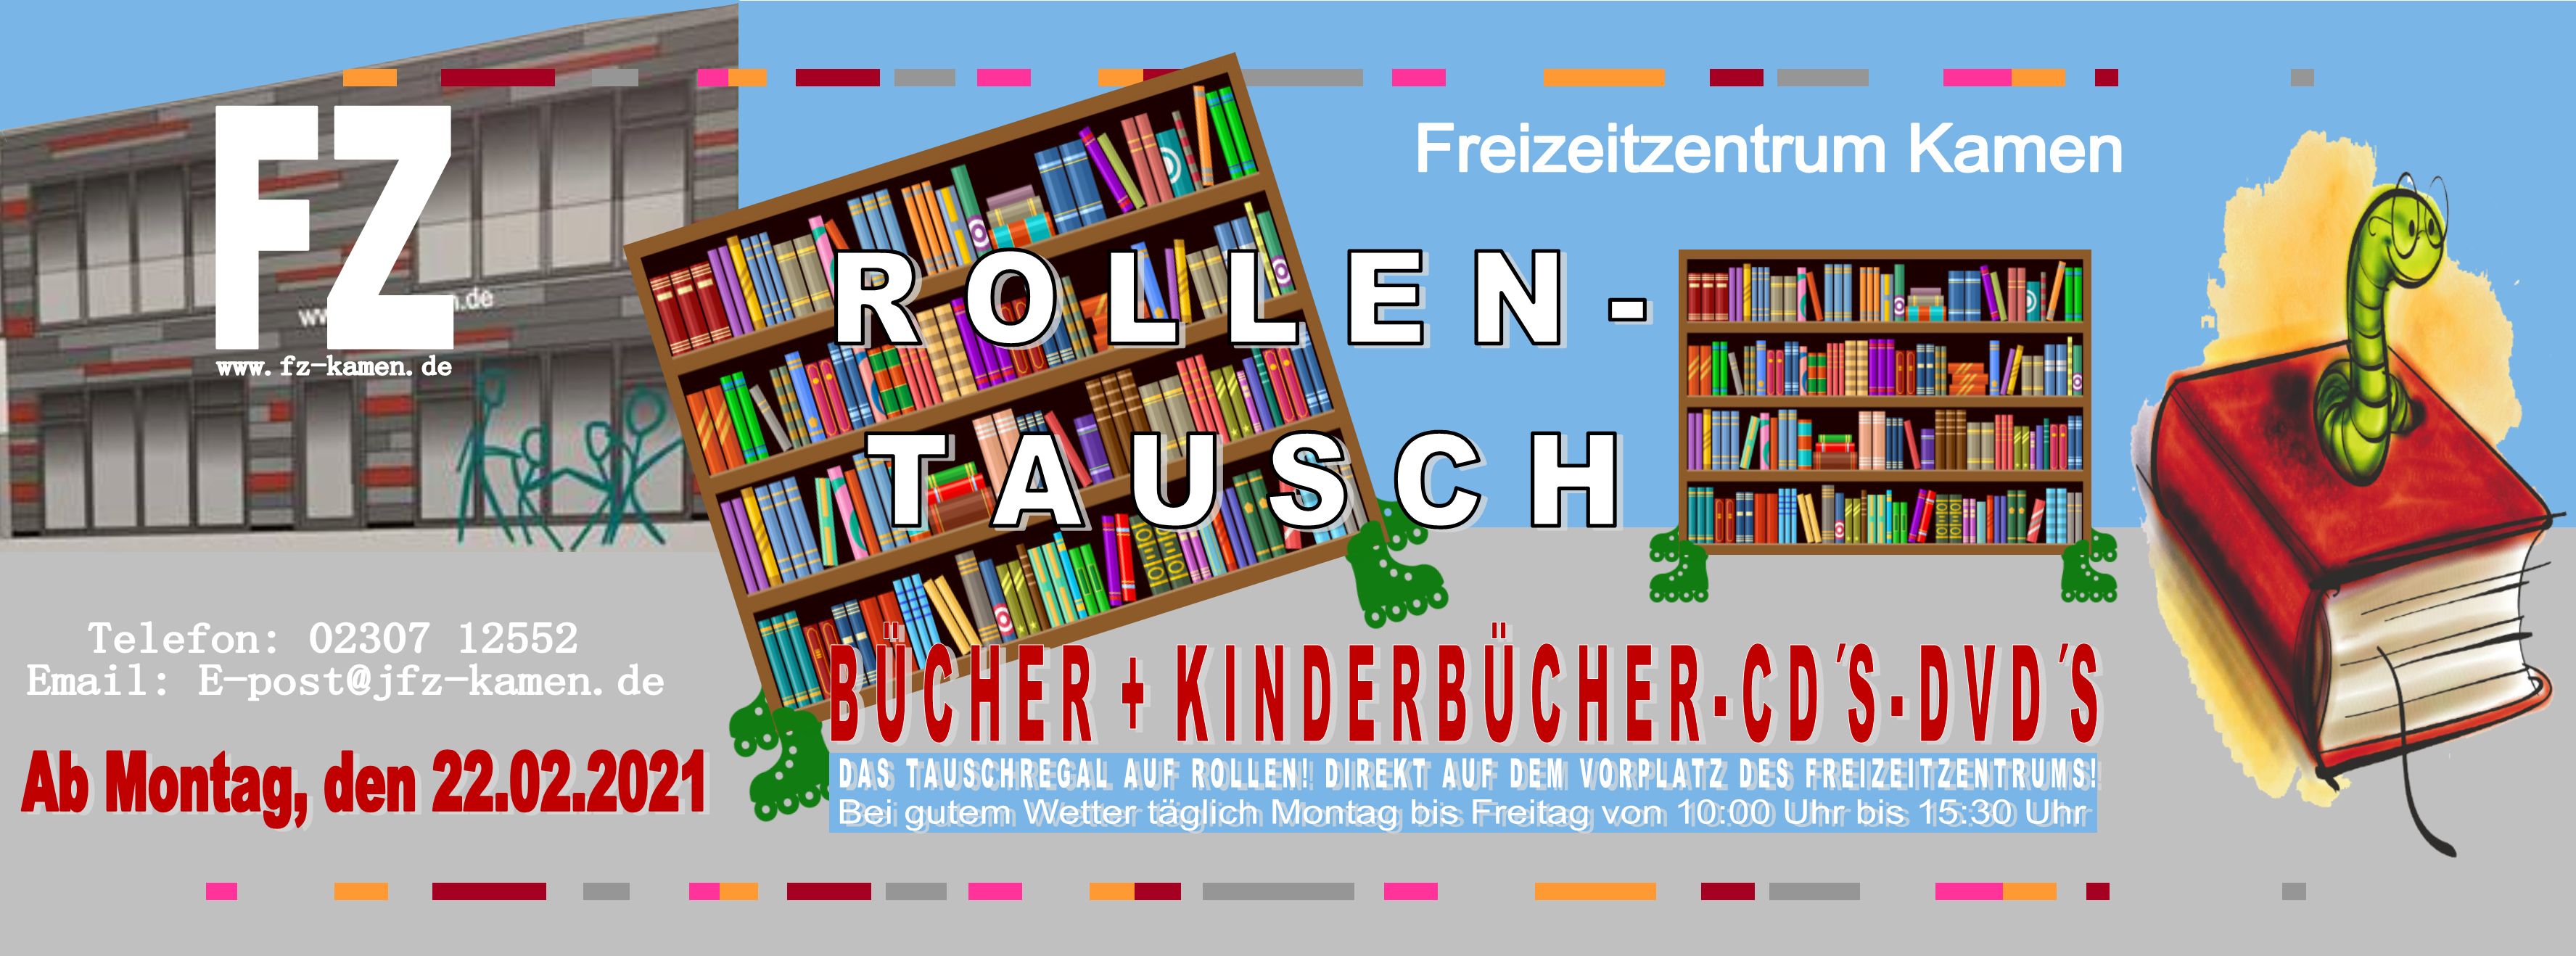 Header FB Rollentausch